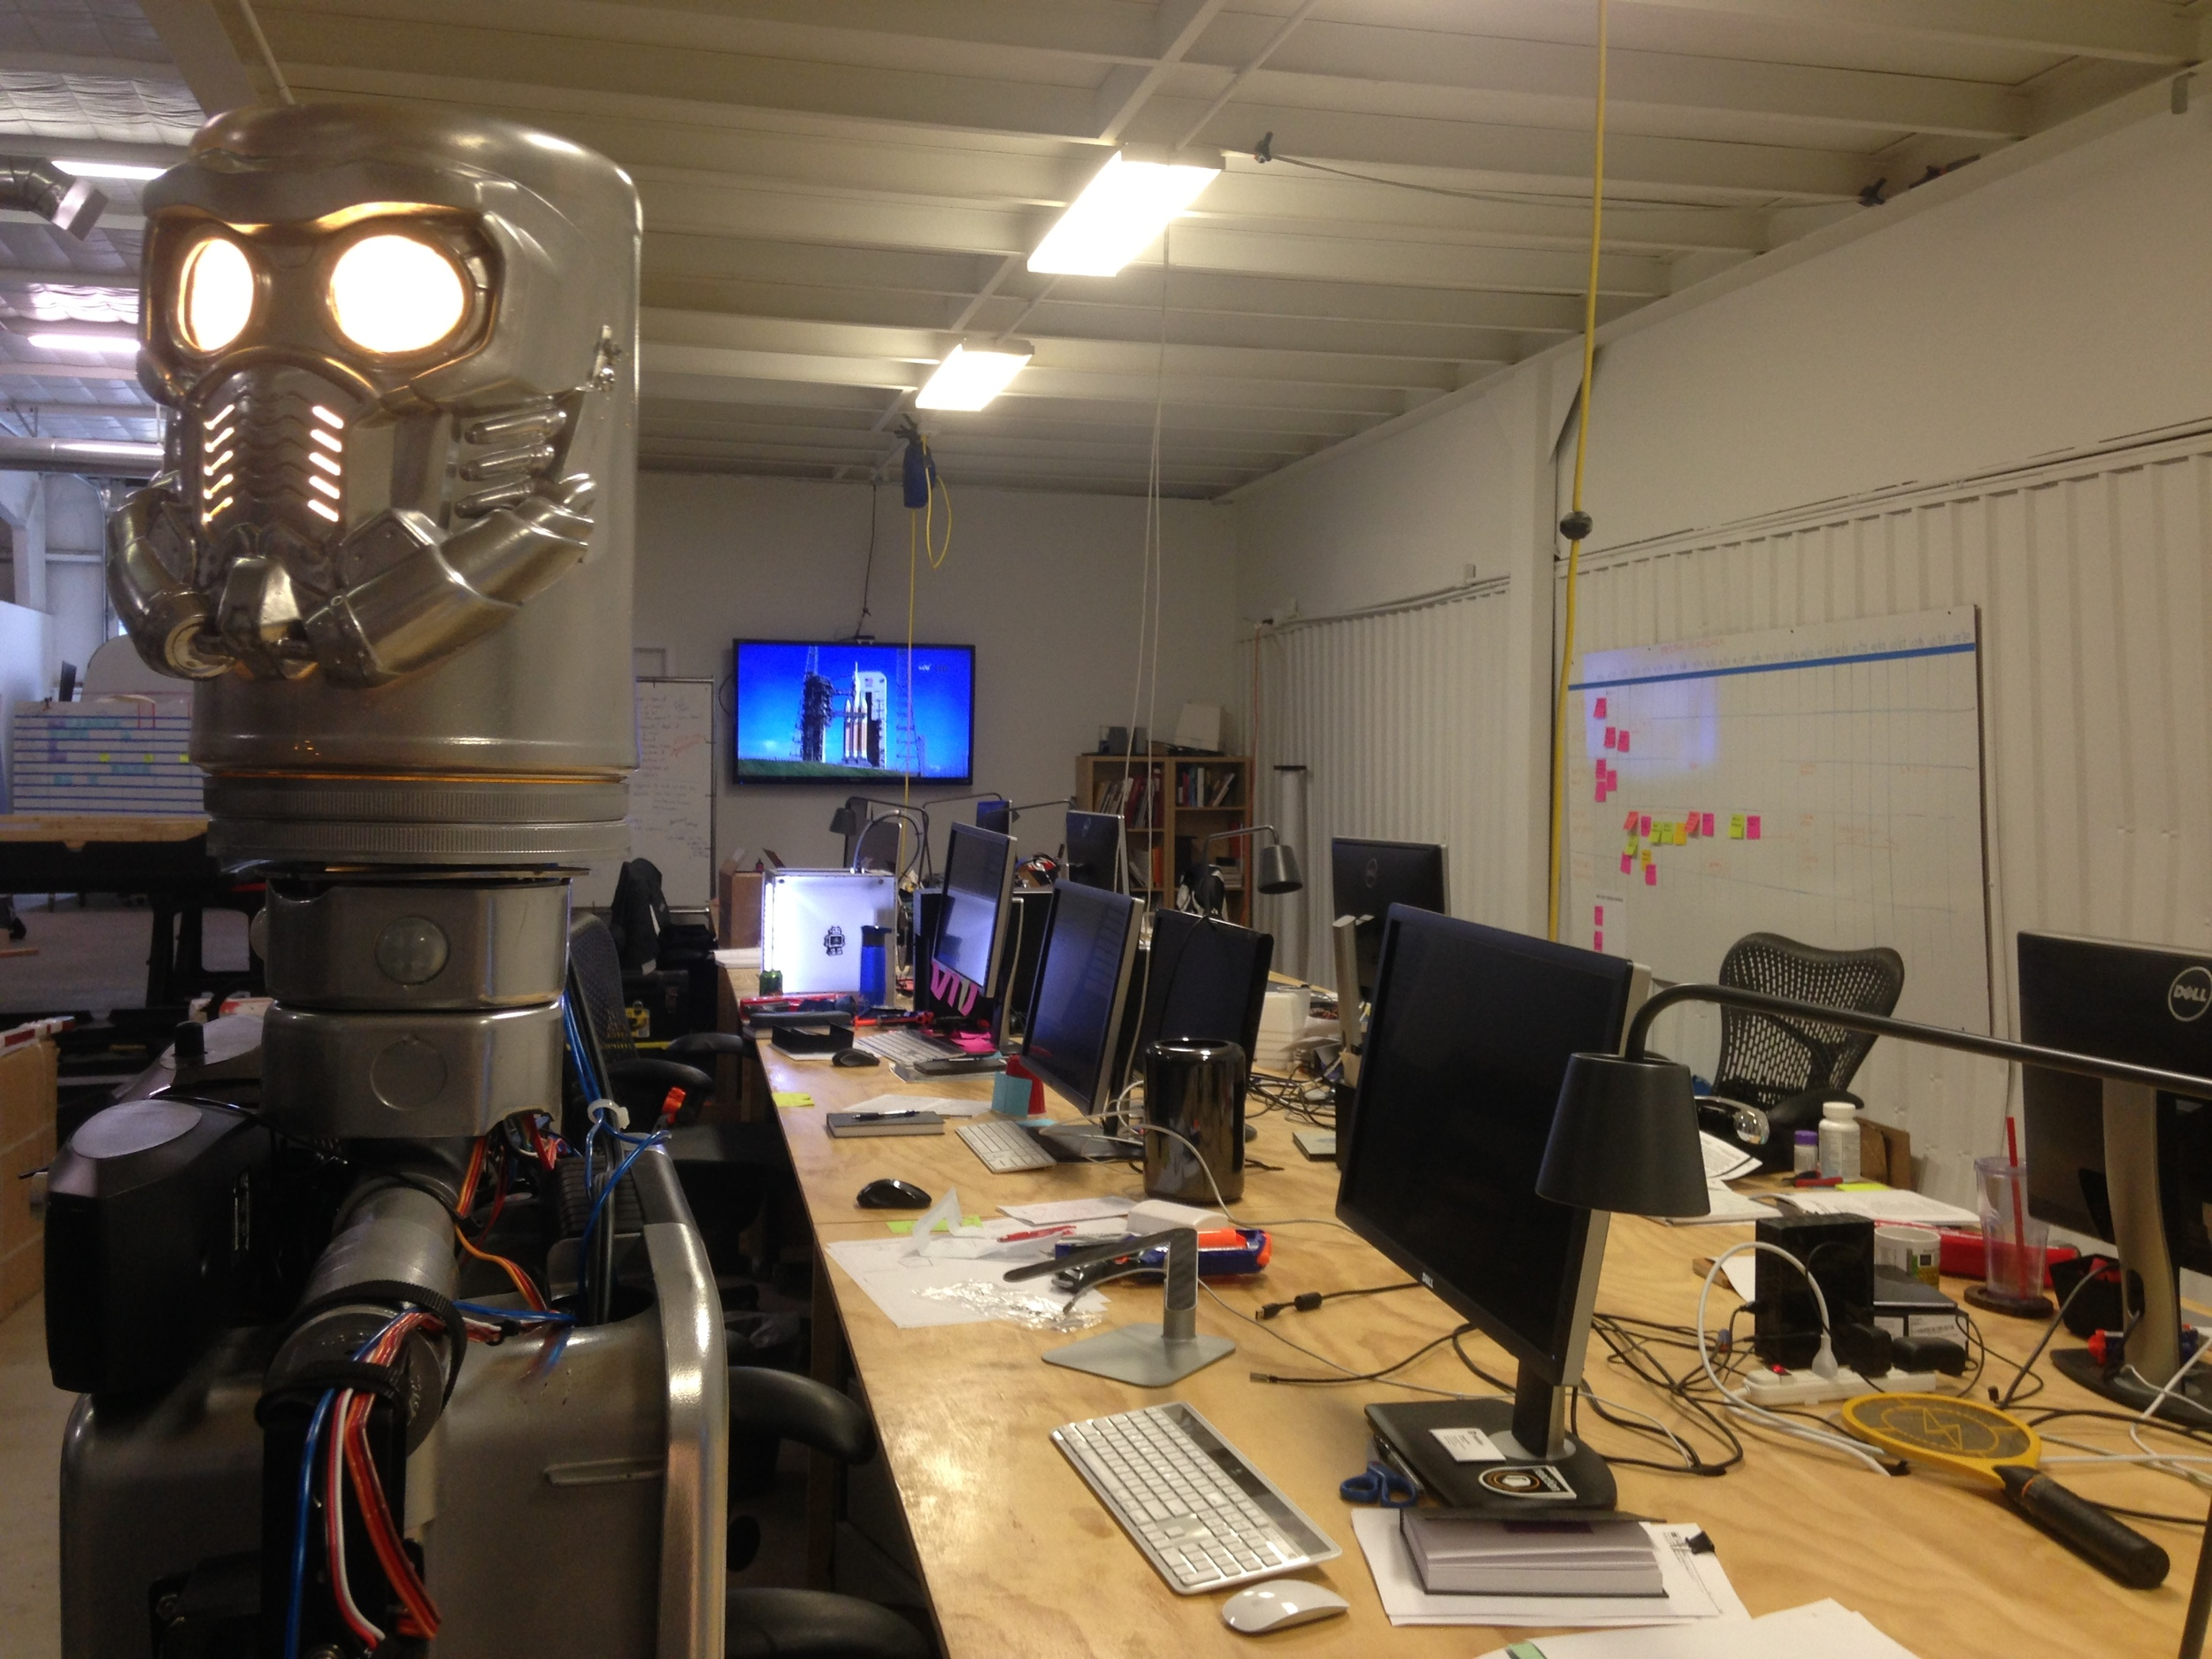 Tony (AX01) finished and functioning at Reaction's second office before NASA's SLS initial flight.